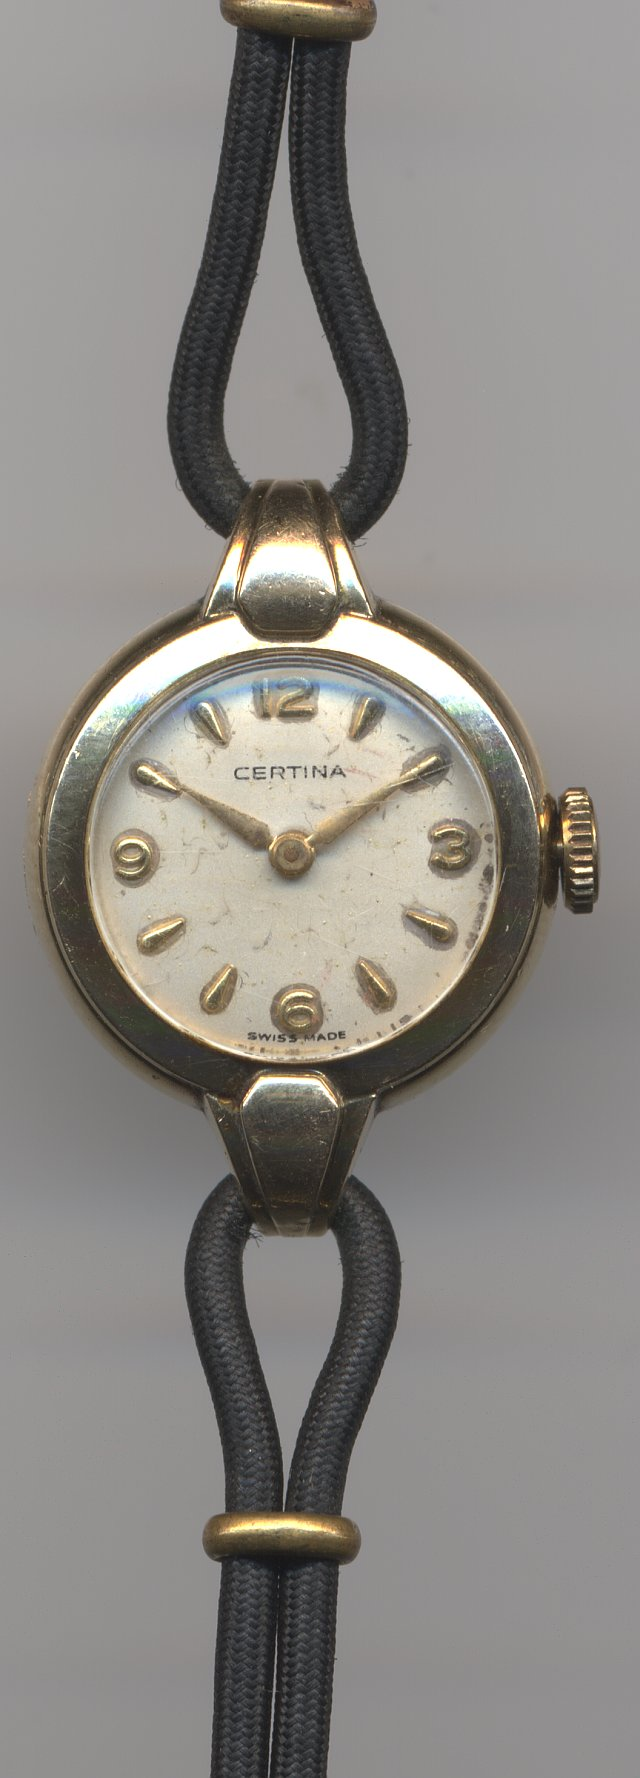 Certina ladies' watch